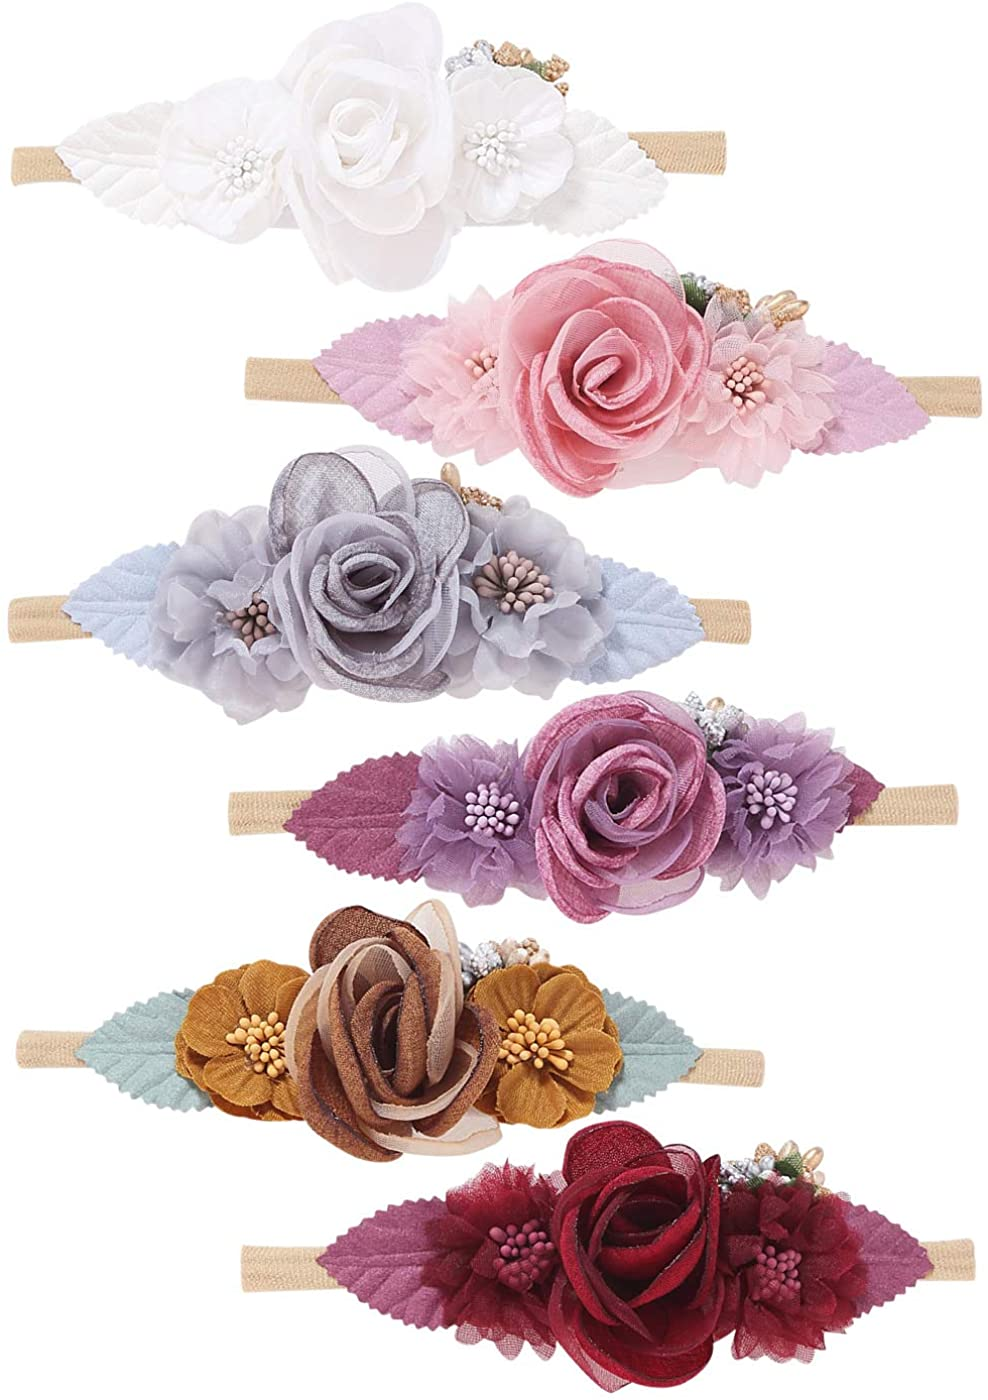 inSowni 6 Pack Delicate Flower Super Stretchy Nylon Headbands Hairbands Hair Accessories Ties for Baby Girls Toddlers Newborns Infants Kids Teens